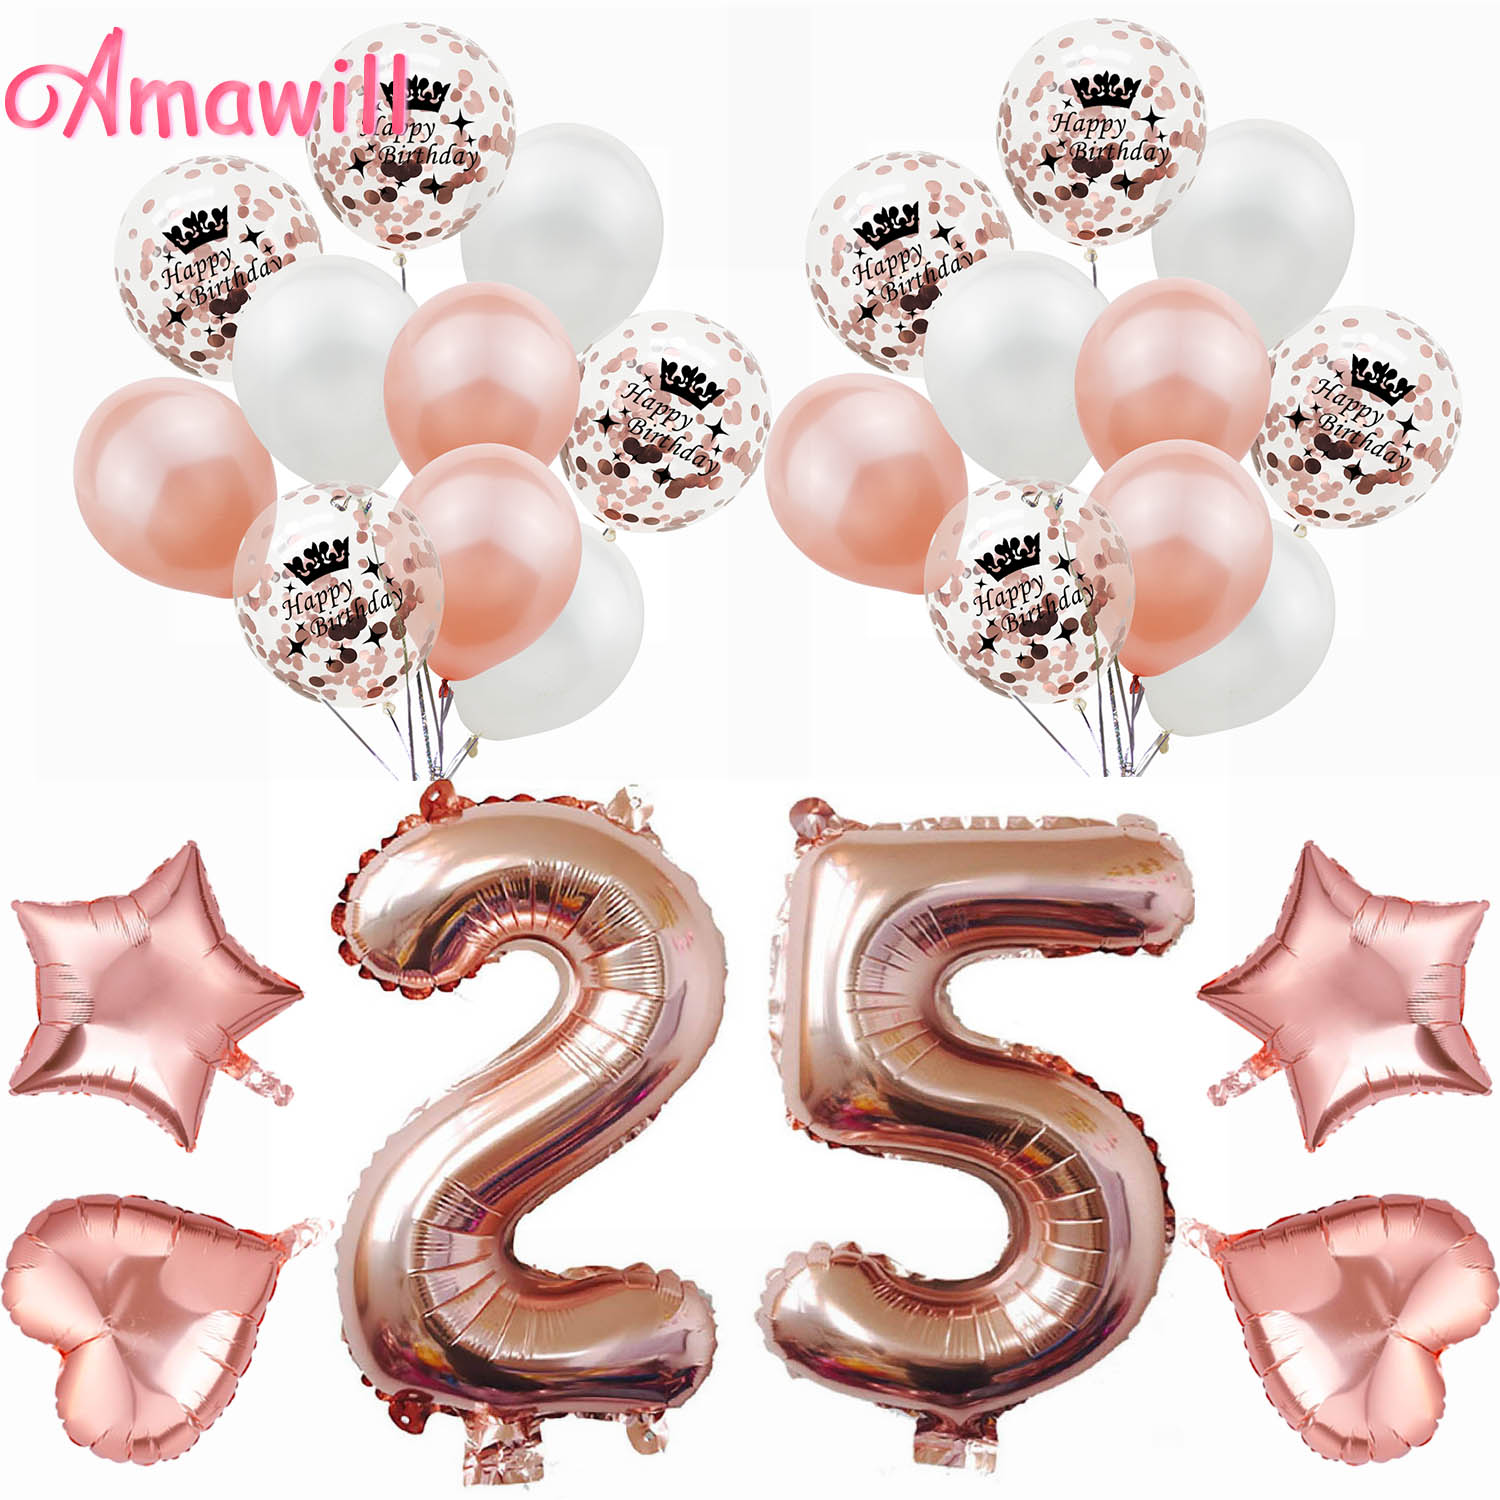 Amawill 32 Inch Happy 25 Birthday Foil Balloons Rose Gold Number 25th Years Old Party Decorations Man Boy Girl Supplies 65D